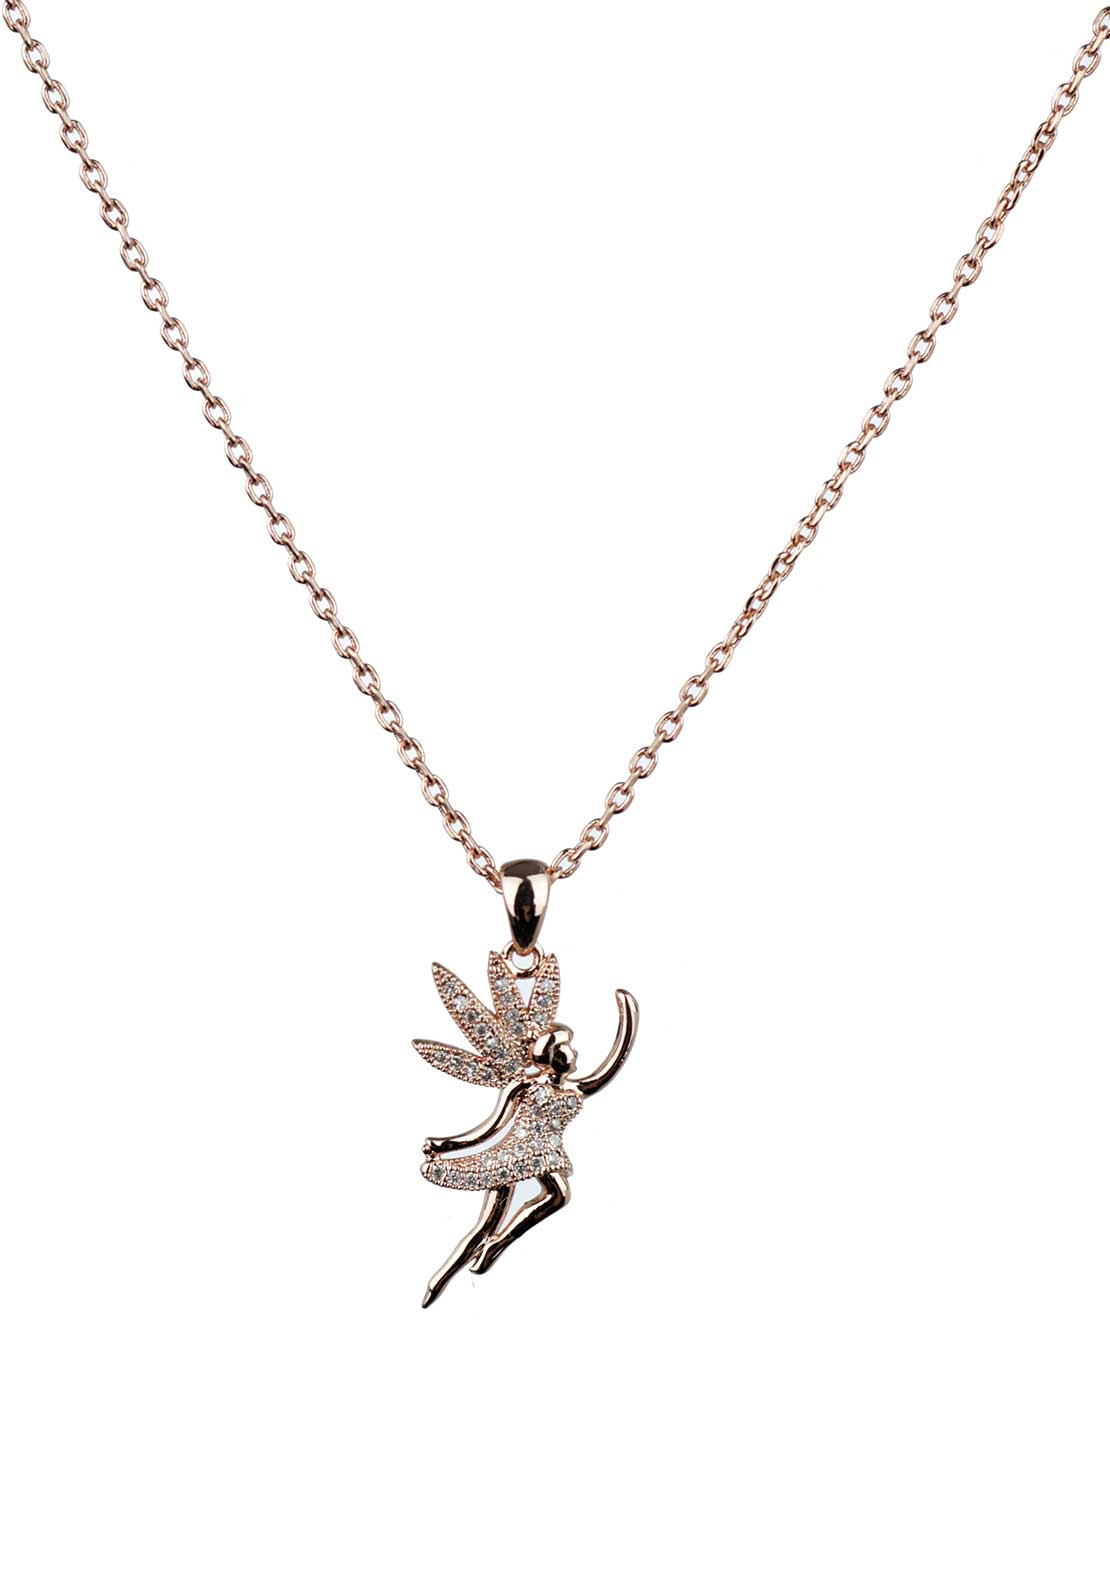 Absolute Jewellery Girls Pave Studded Fairy Pendant Necklace, Rose Gold